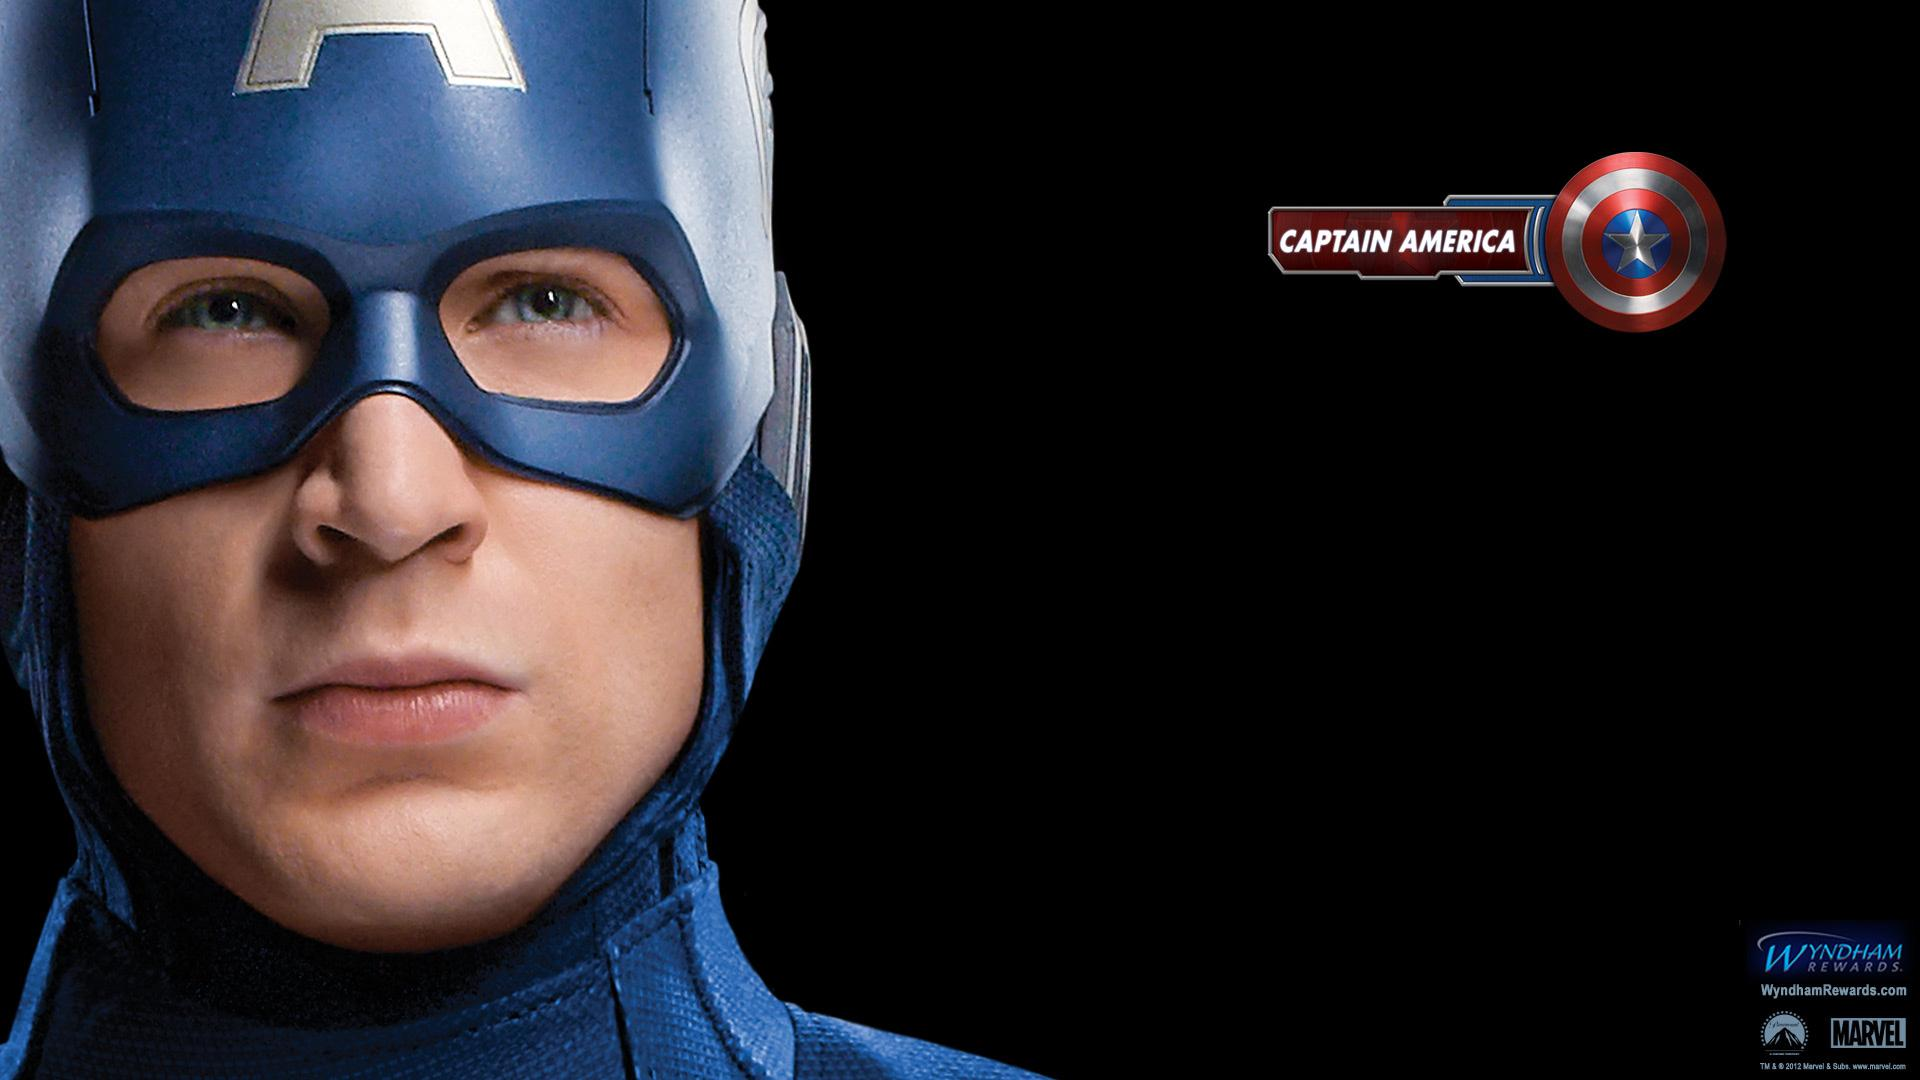 Captain-America-is-the-dullest-Avenger-Description-from-thefocusedfilmographer-com-I-searche-wallpaper-wpc9001816